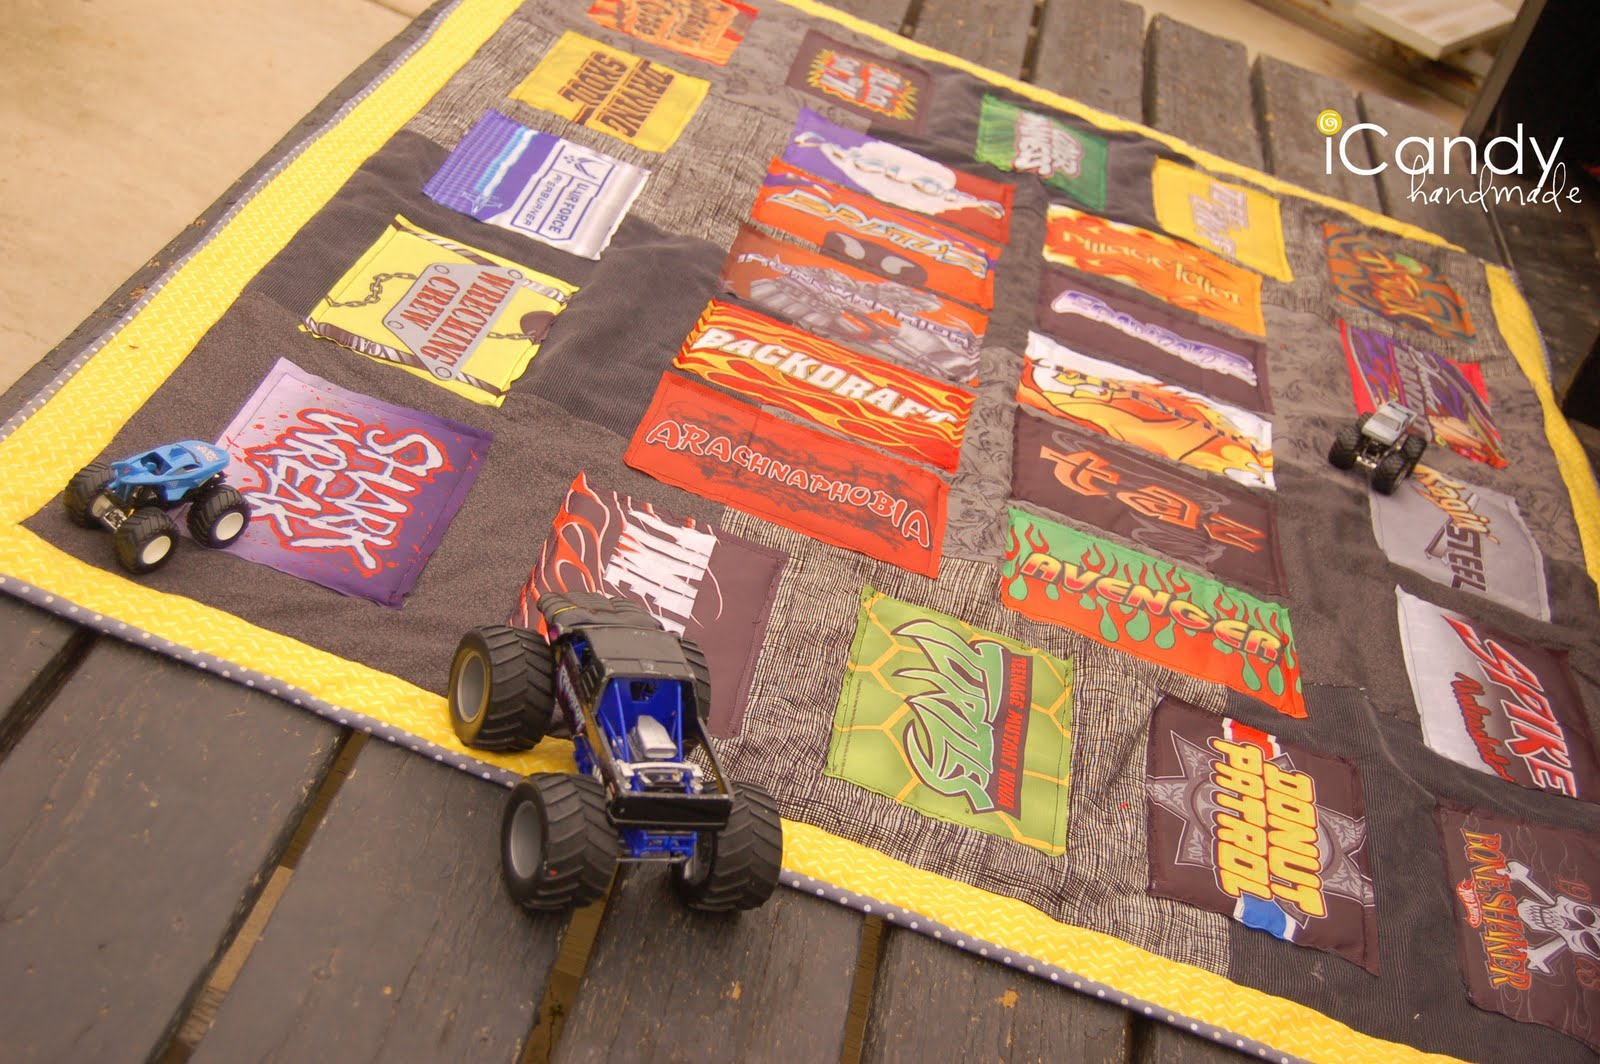 Monster Truck Quilt - iCandy handmade : monster truck quilt - Adamdwight.com